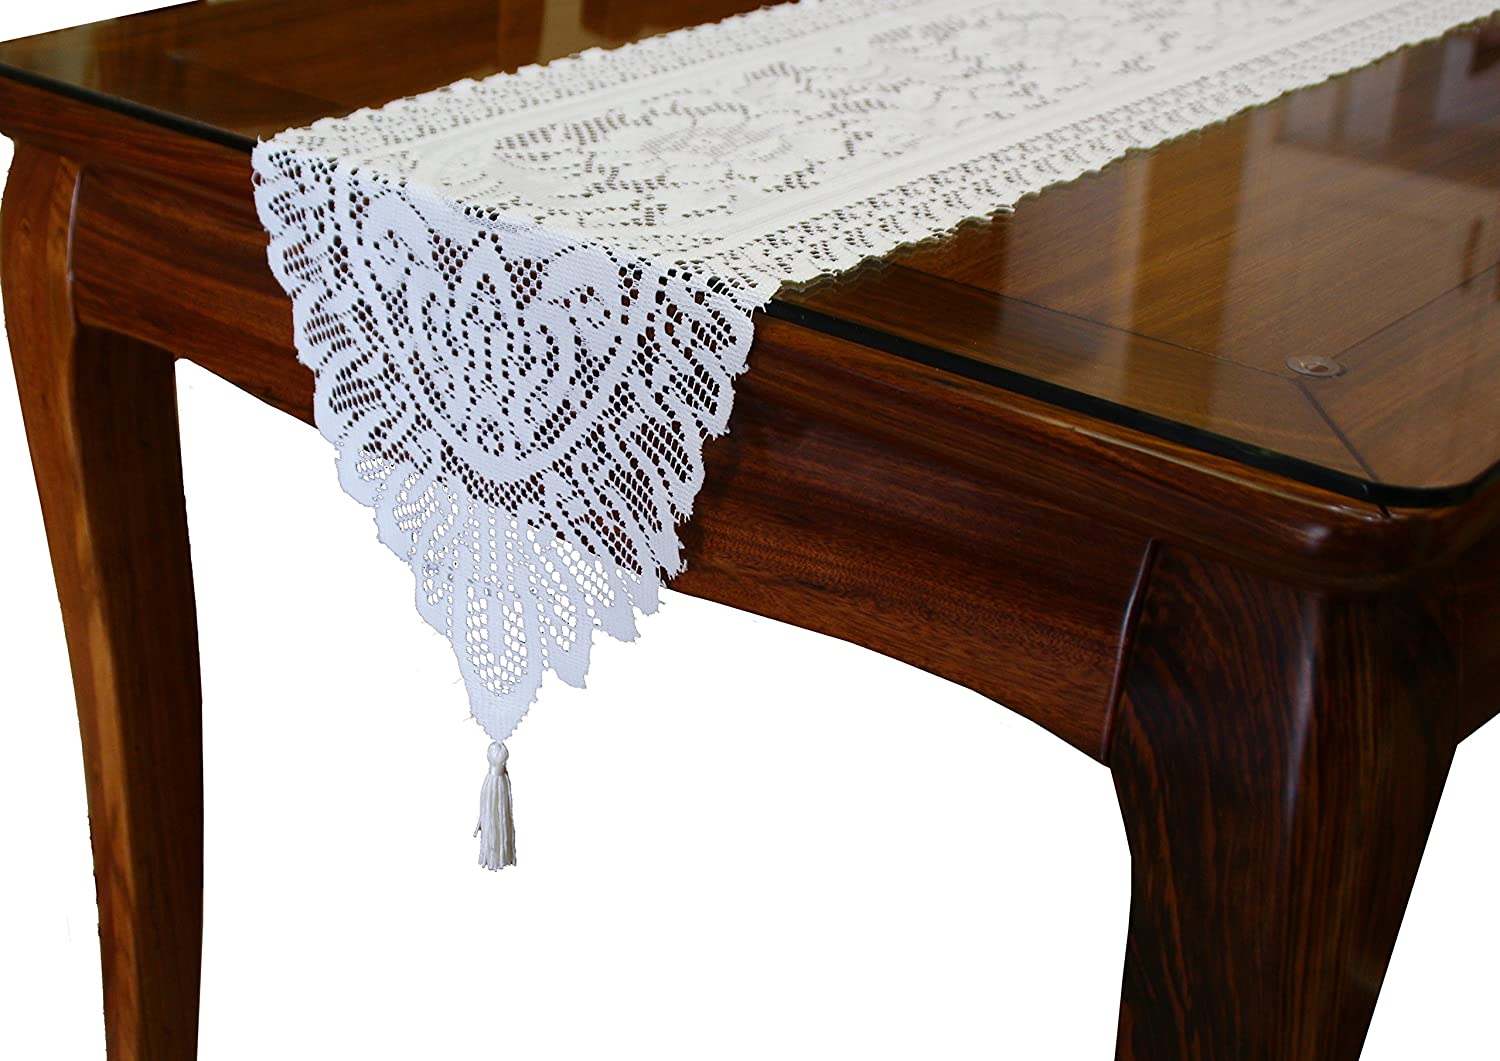 GEFEII White Lace Table Runner Embroidered Floral Lace Dresser Scarves for Kitchen Dining Table Outdoor Wedding Party Overlay Decoration (White, 13 X 45)